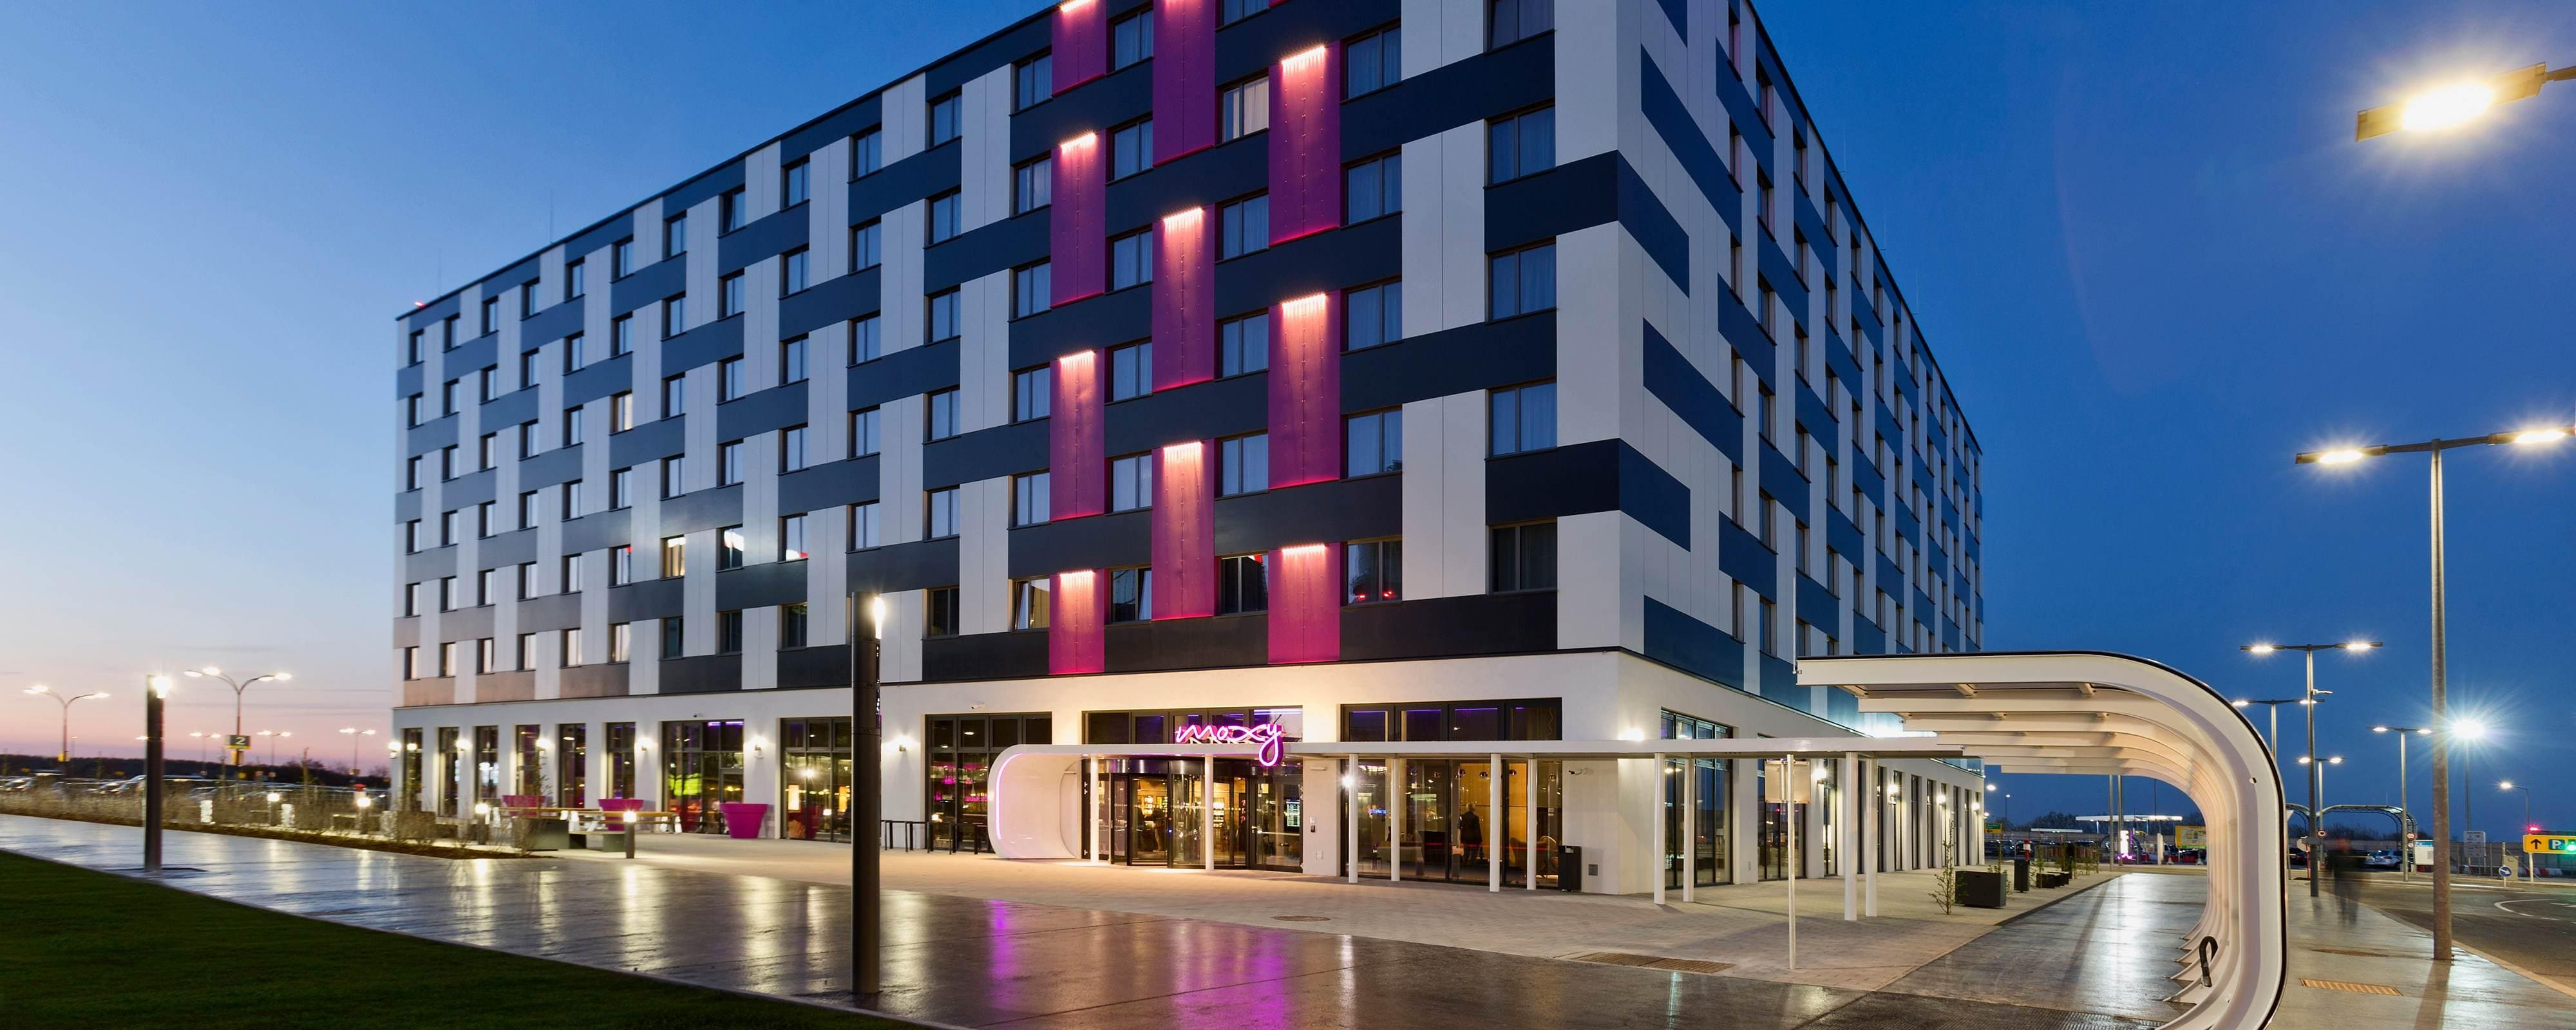 Vienna Airport Hotel With Chic, Modern Style | Moxy